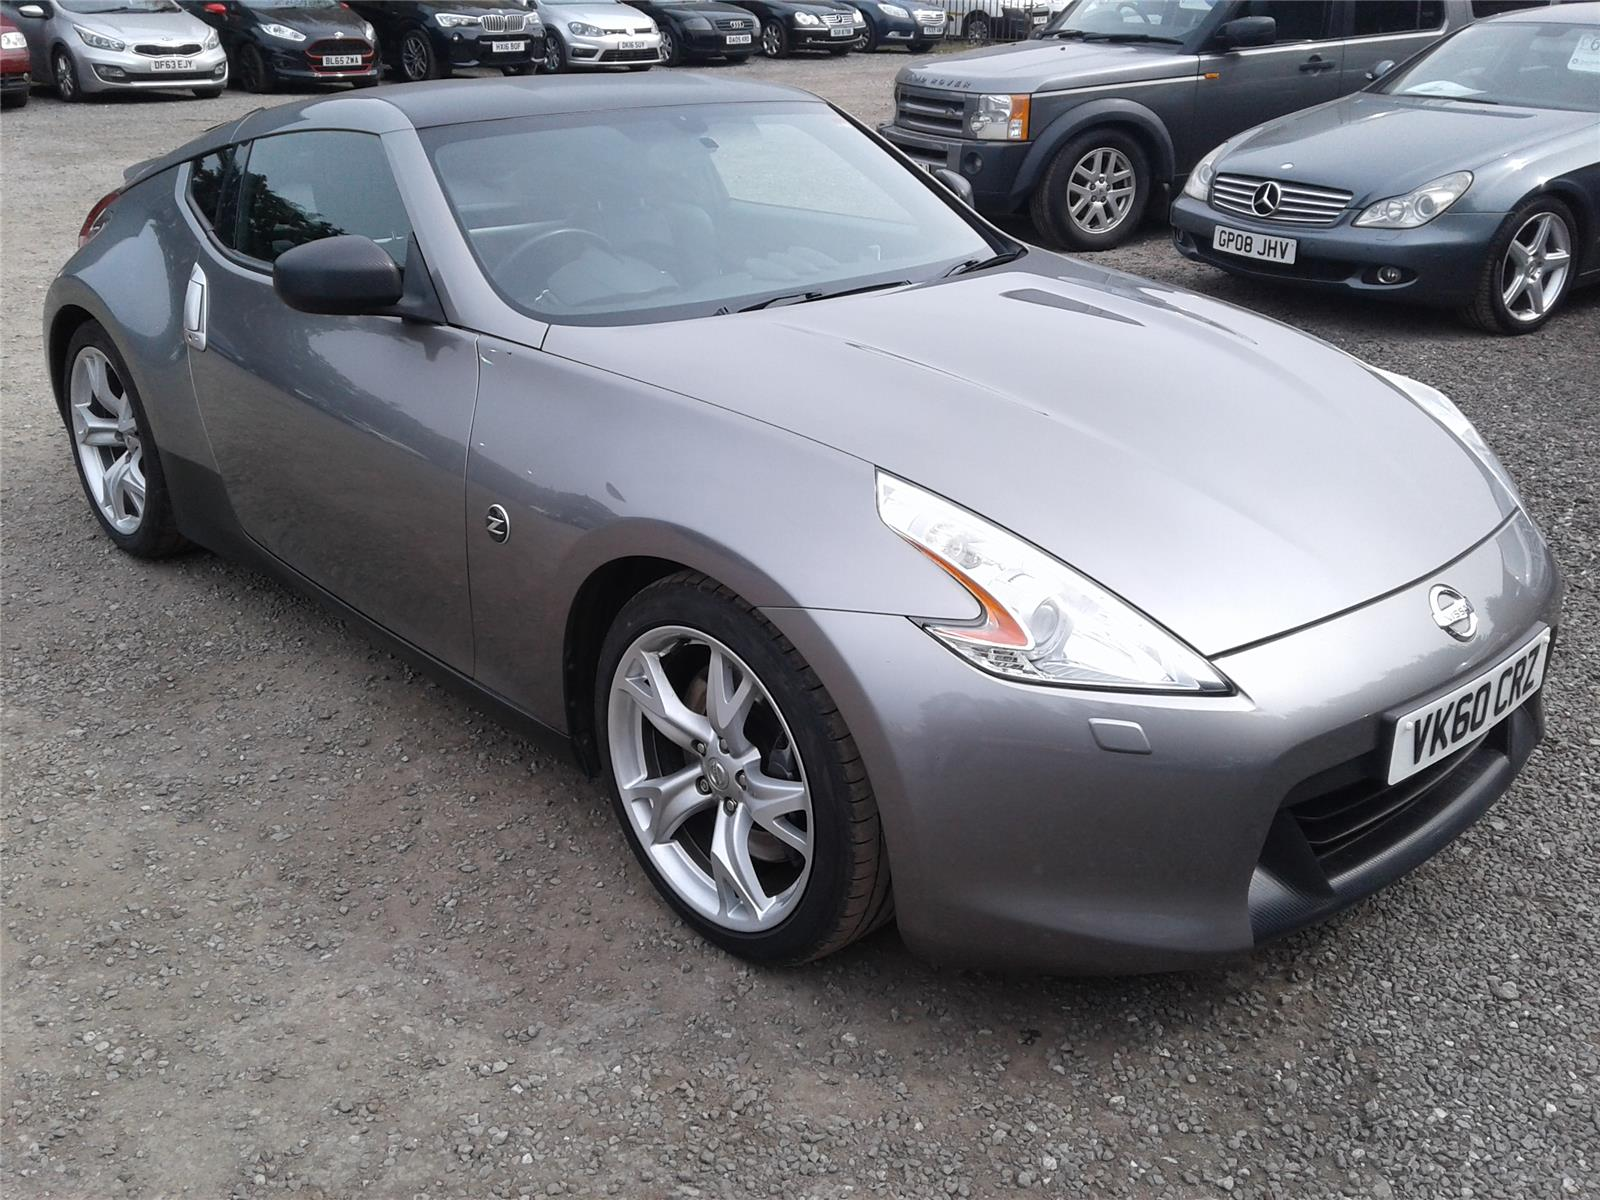 2010 Nissan 370Z GT Pack 3696 Petrol Manual 6 Speed 2 Door Coupe